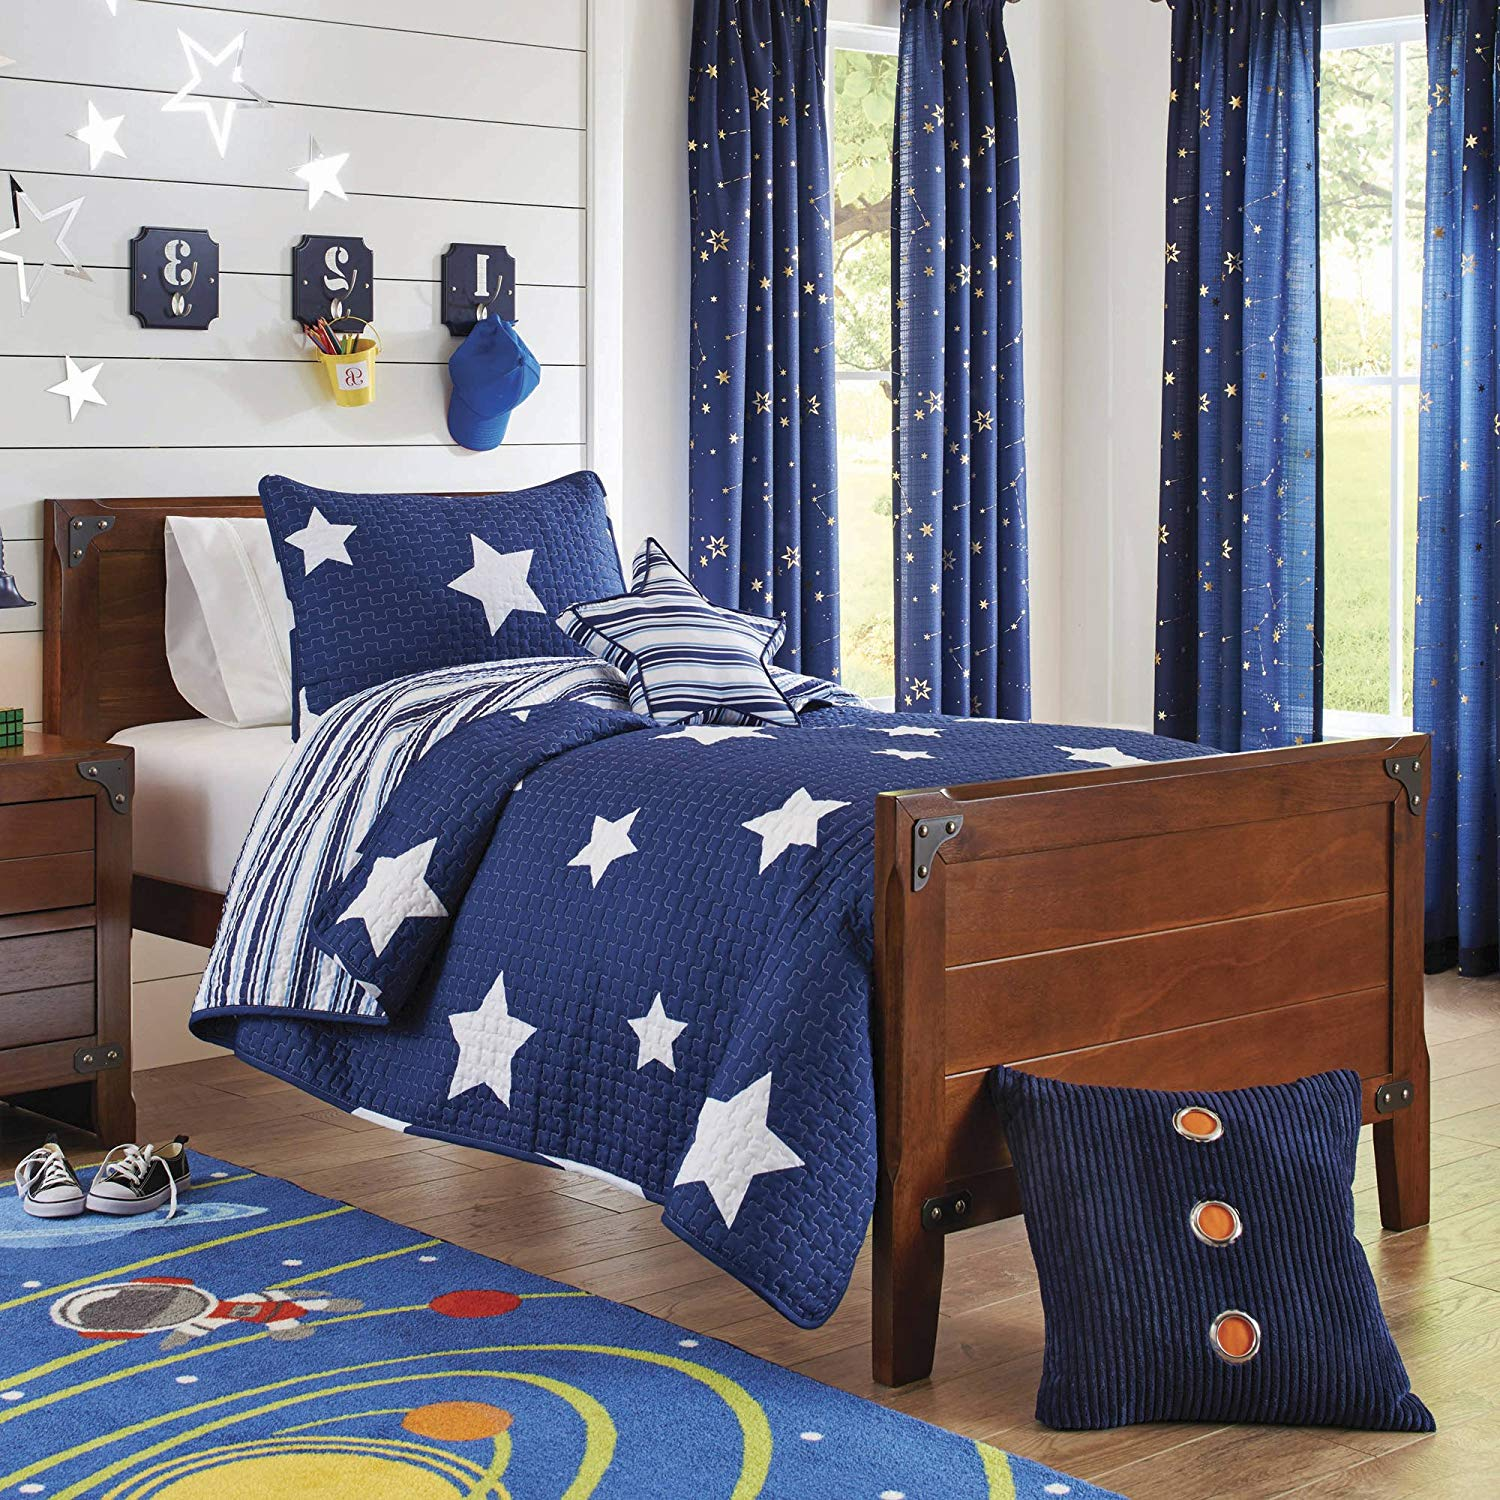 3 Piece Boys Navy Blue Planets Stars Quilt Twin Set, White Color Space Pattern Planets Design, Kids Bedding For Bedroom, Modern Contemporary Universe Themed Teen Striped, Polyester Microfiber